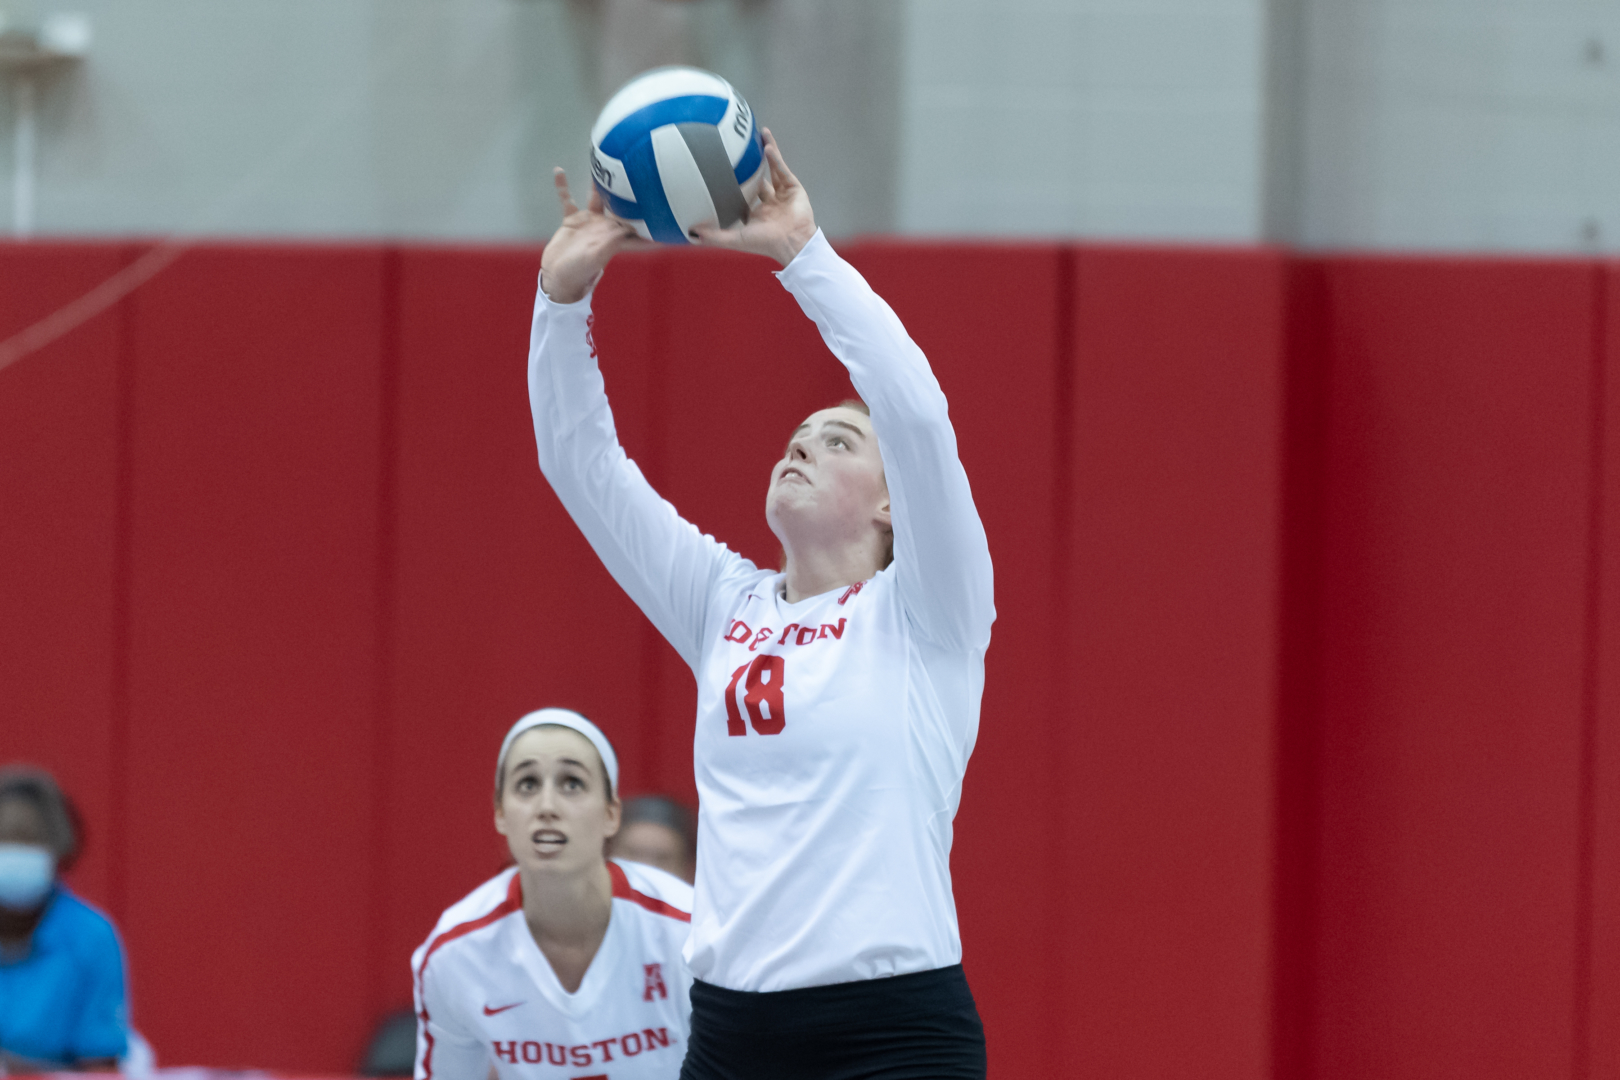 UH volleyball freshman setter Annie Cooke during a regular season game against Rice on Jan. 24 at Athletics Alumni Center. | Courtesy of UH athletics